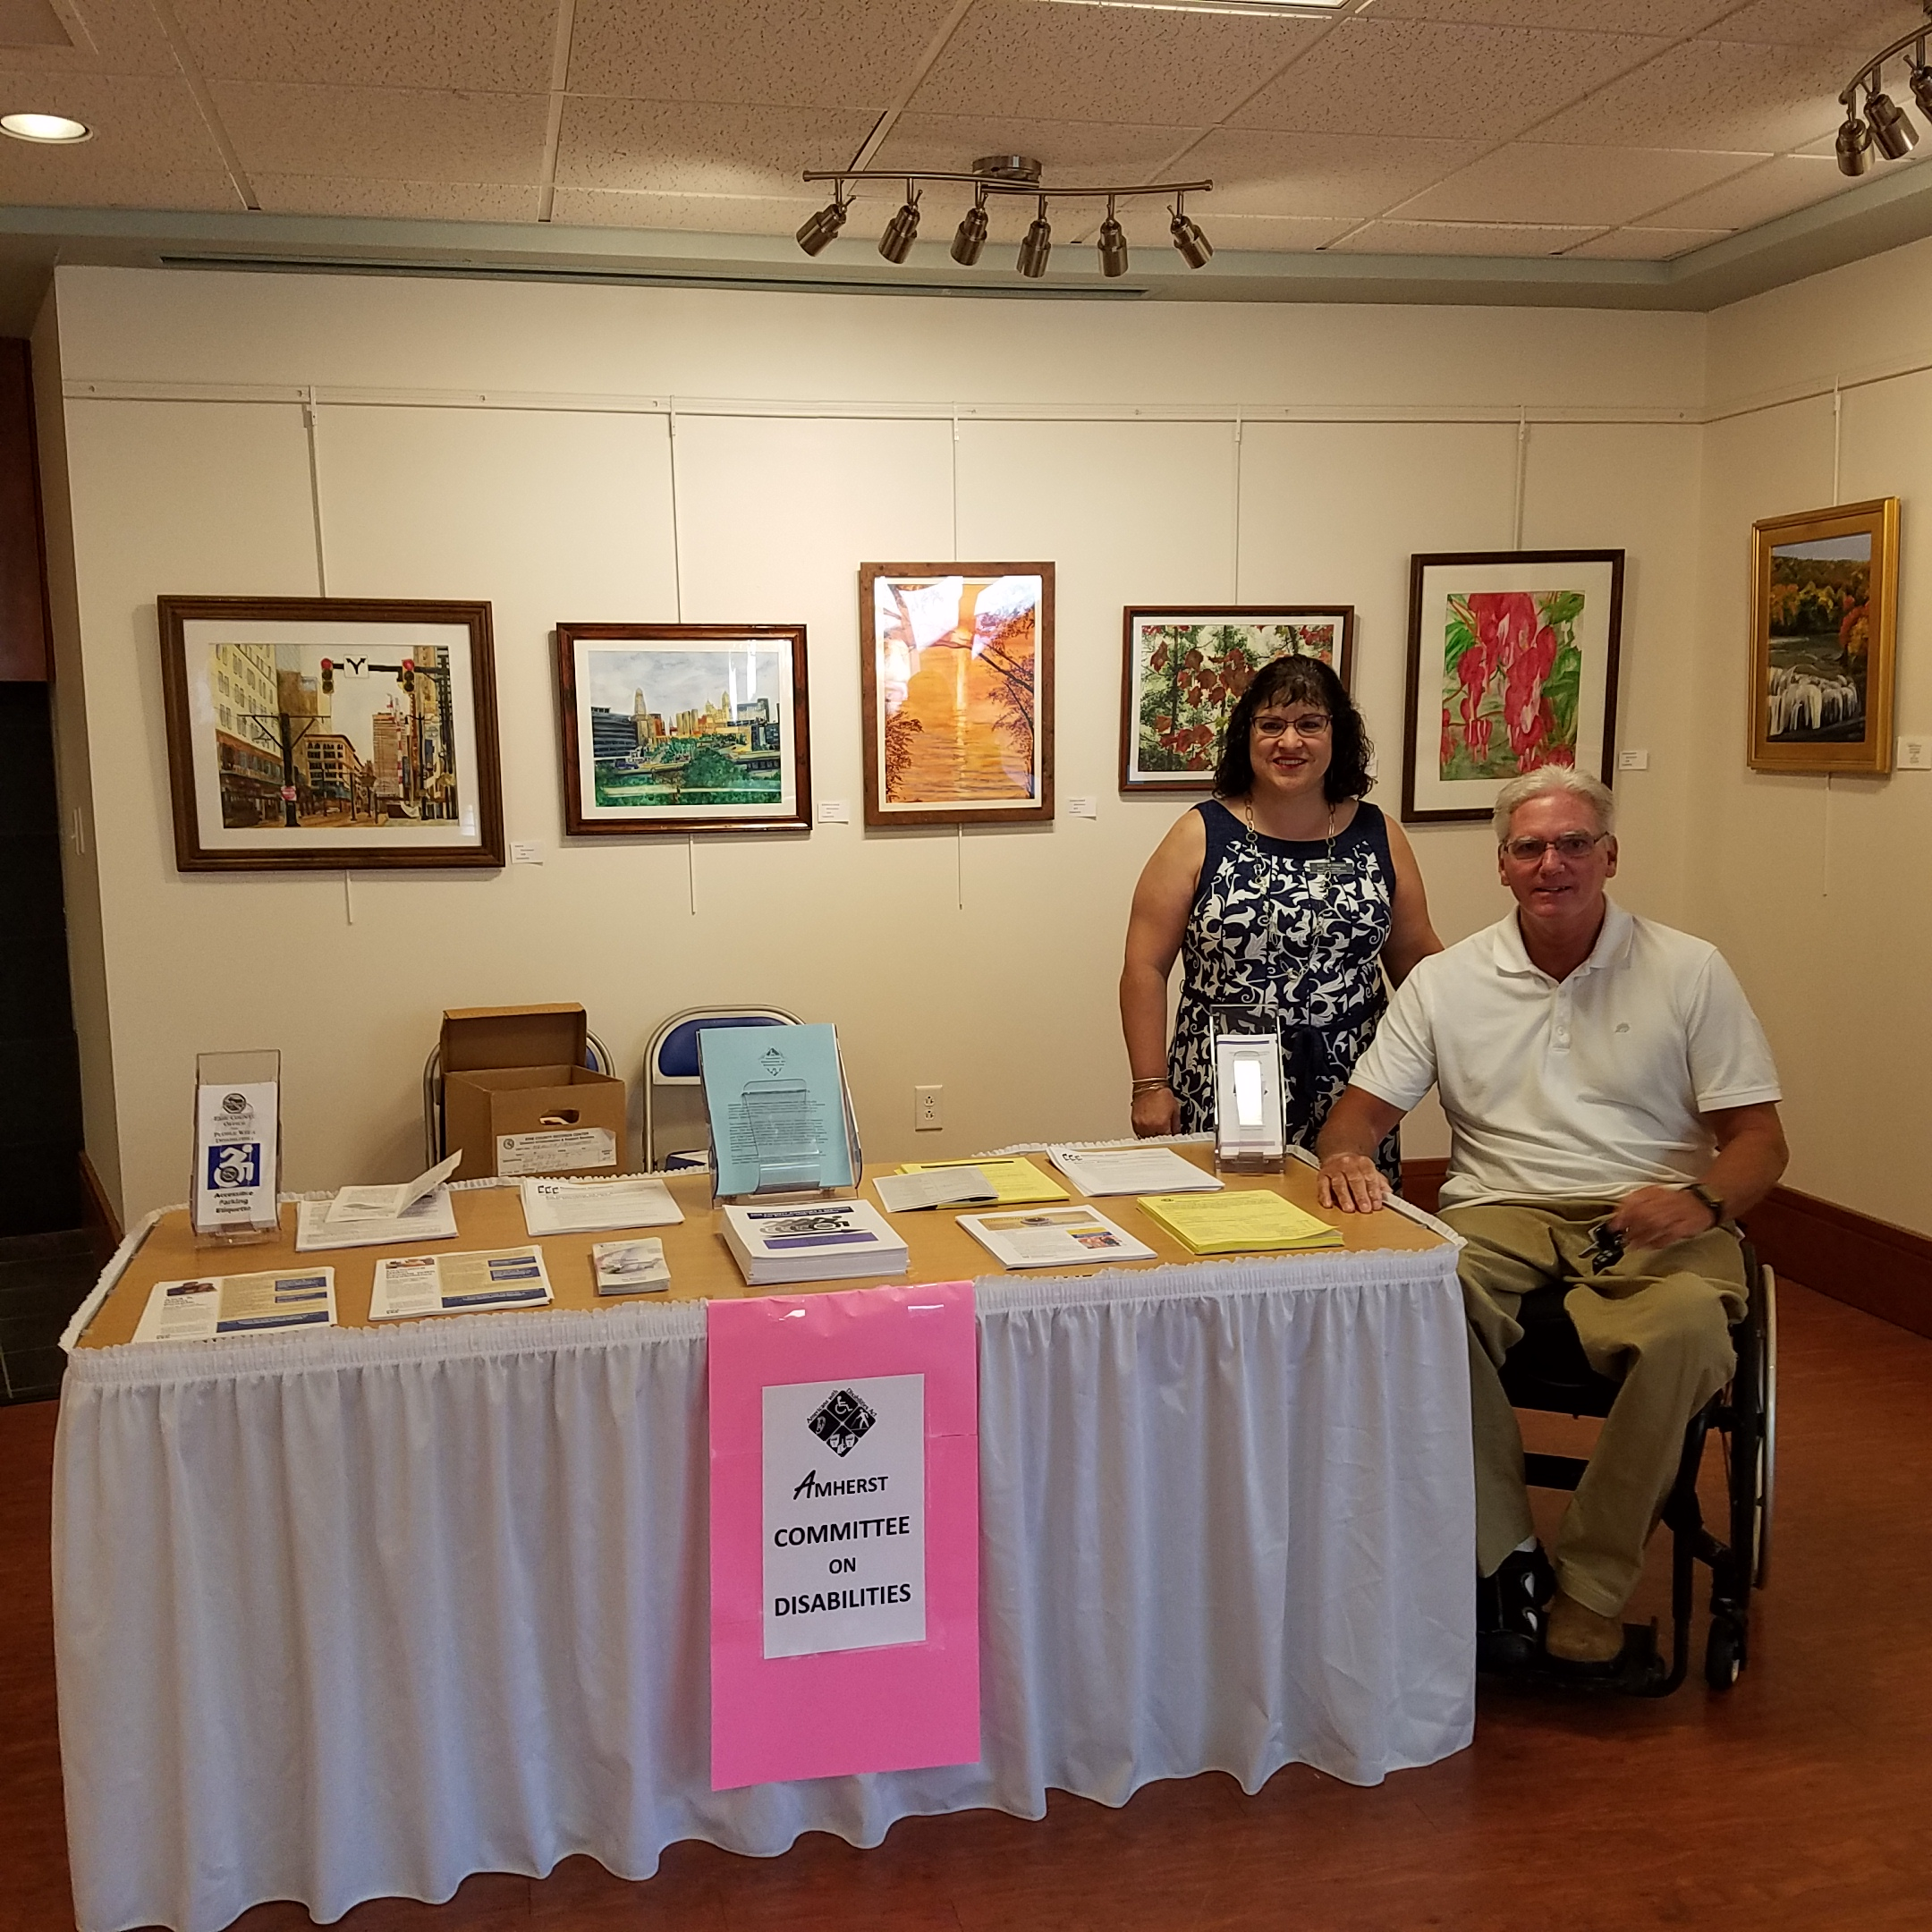 Pictured at the Family Health Fair held on August 4, 2019 at the Amherst Senior Center are Luci Miranda, Committee Member, and Thomas Roetzer, Committee Co-Chair.  The Committee had a table at the Fair, and provided various leaflets with information pertinent to persons with disabilities.